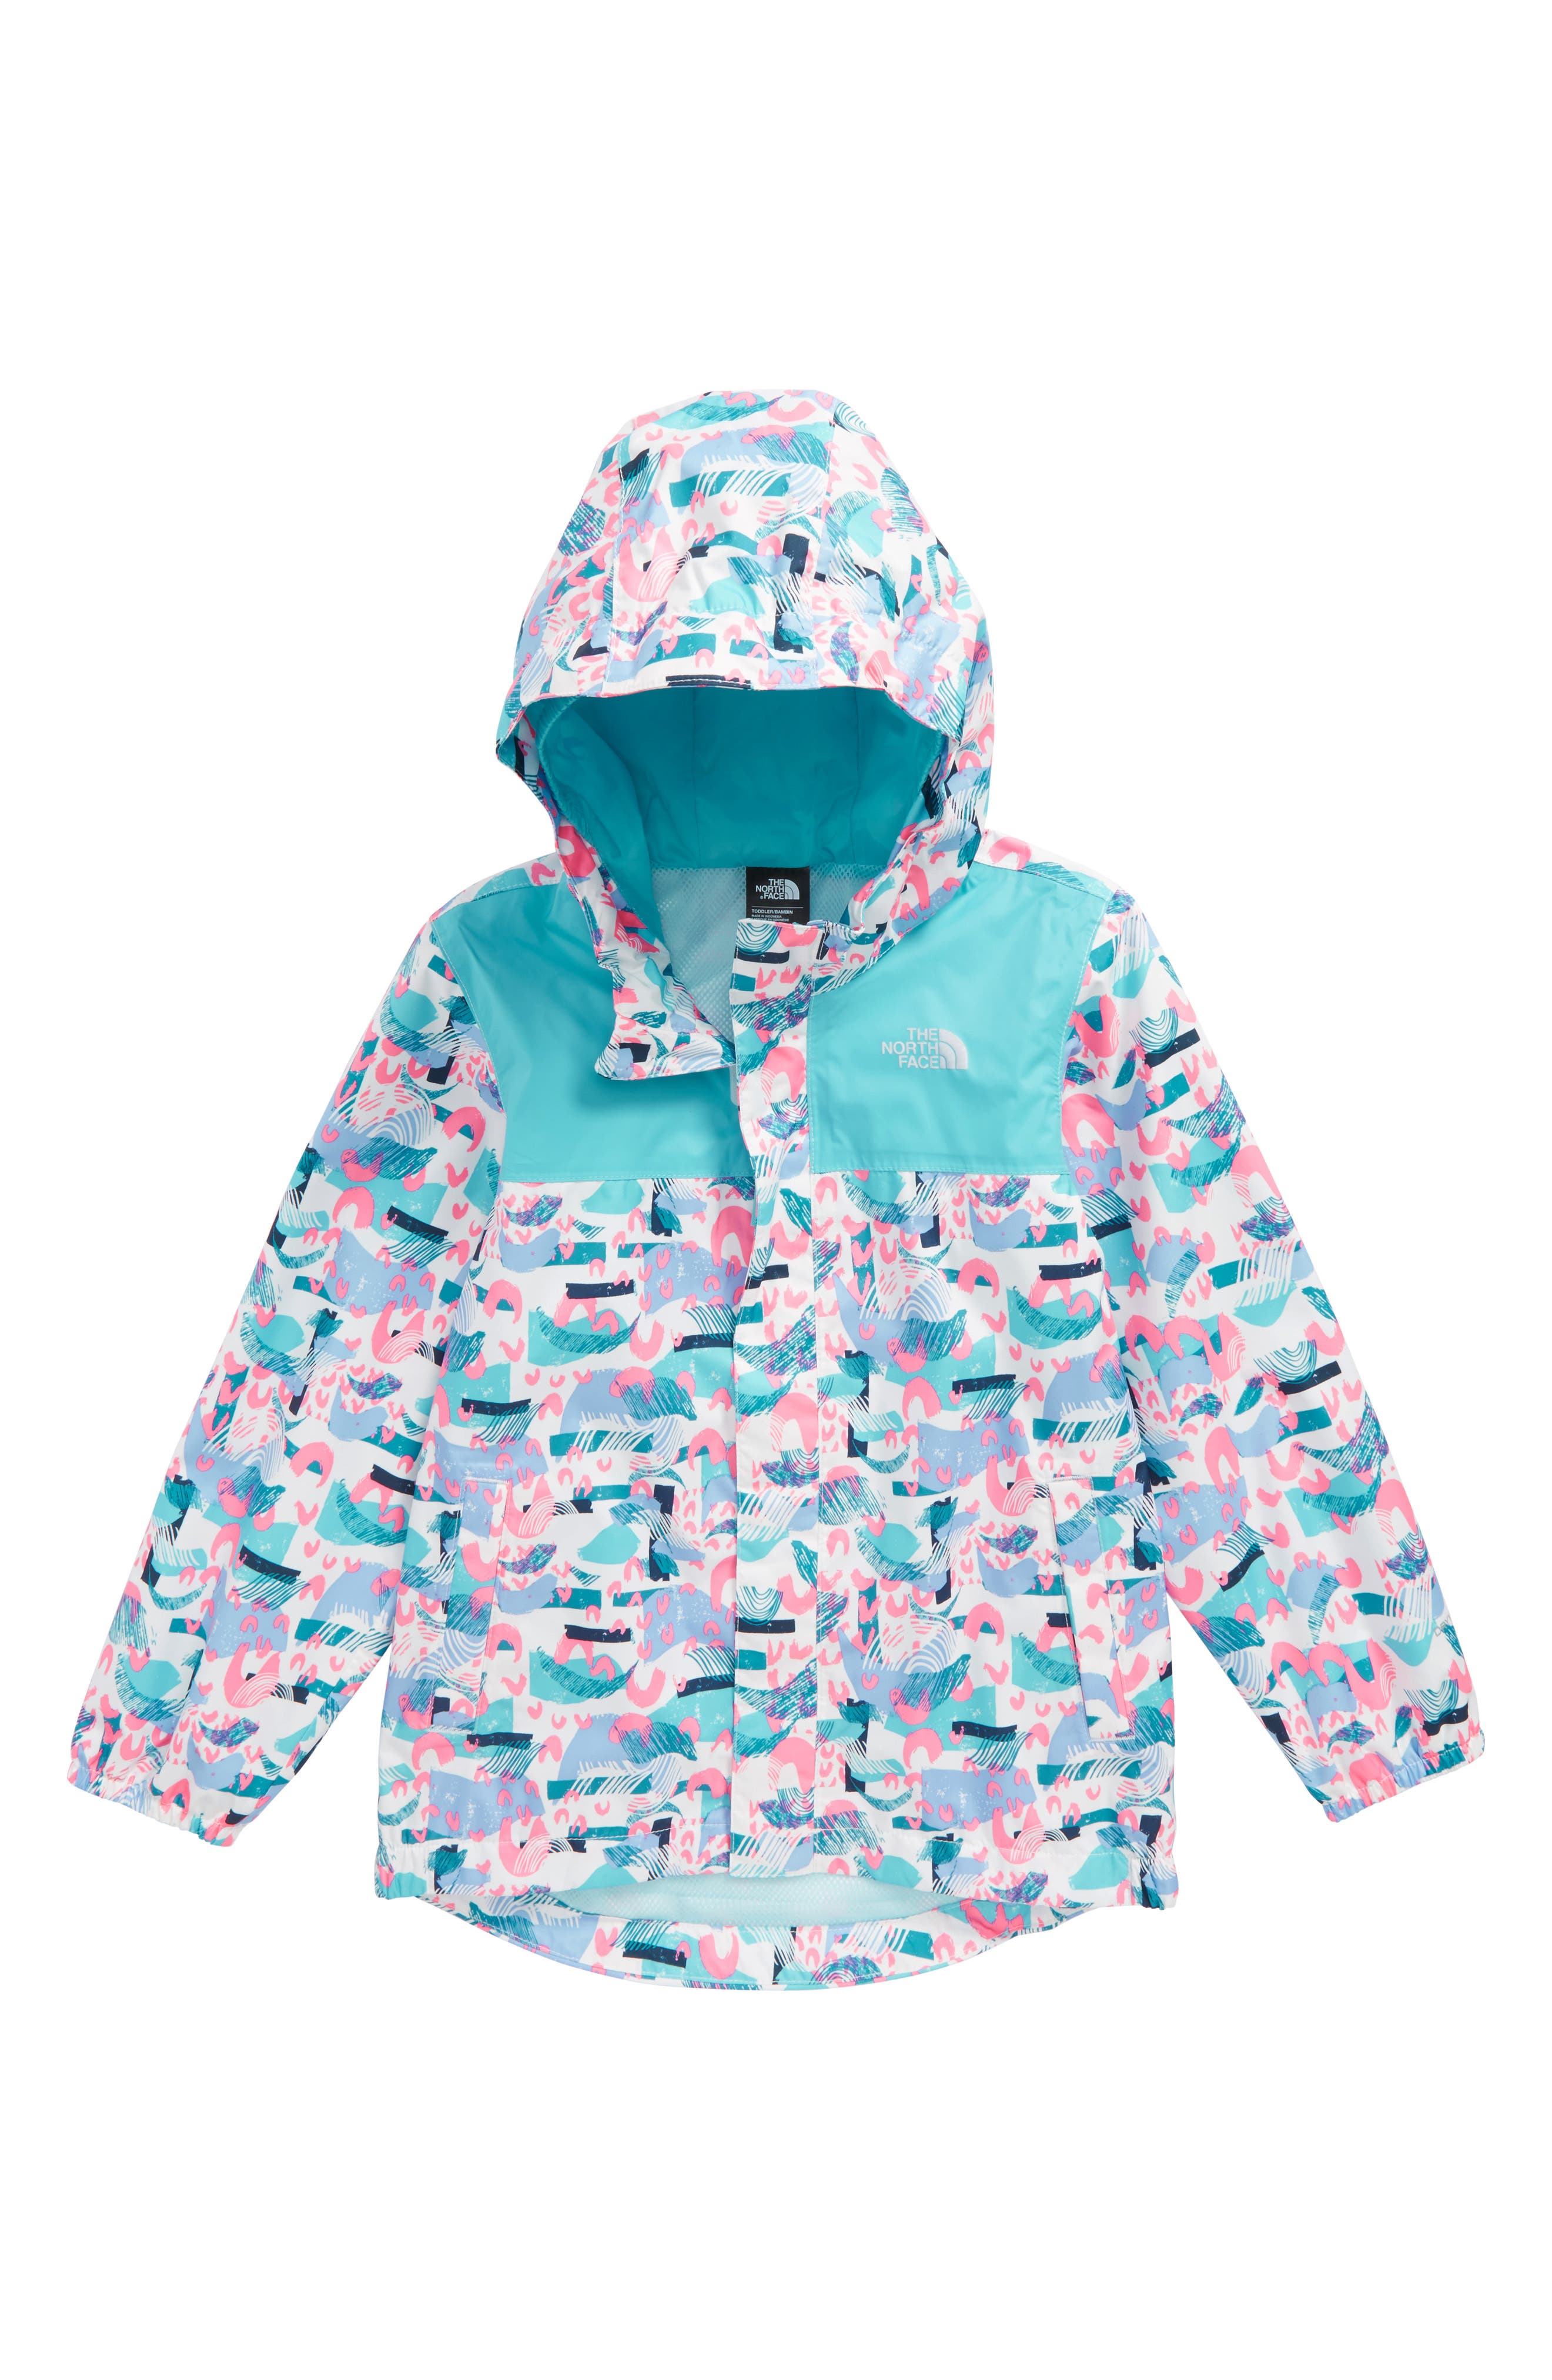 Tailout Hooded Rain Jacket,                         Main,                         color, White Rainbow Print